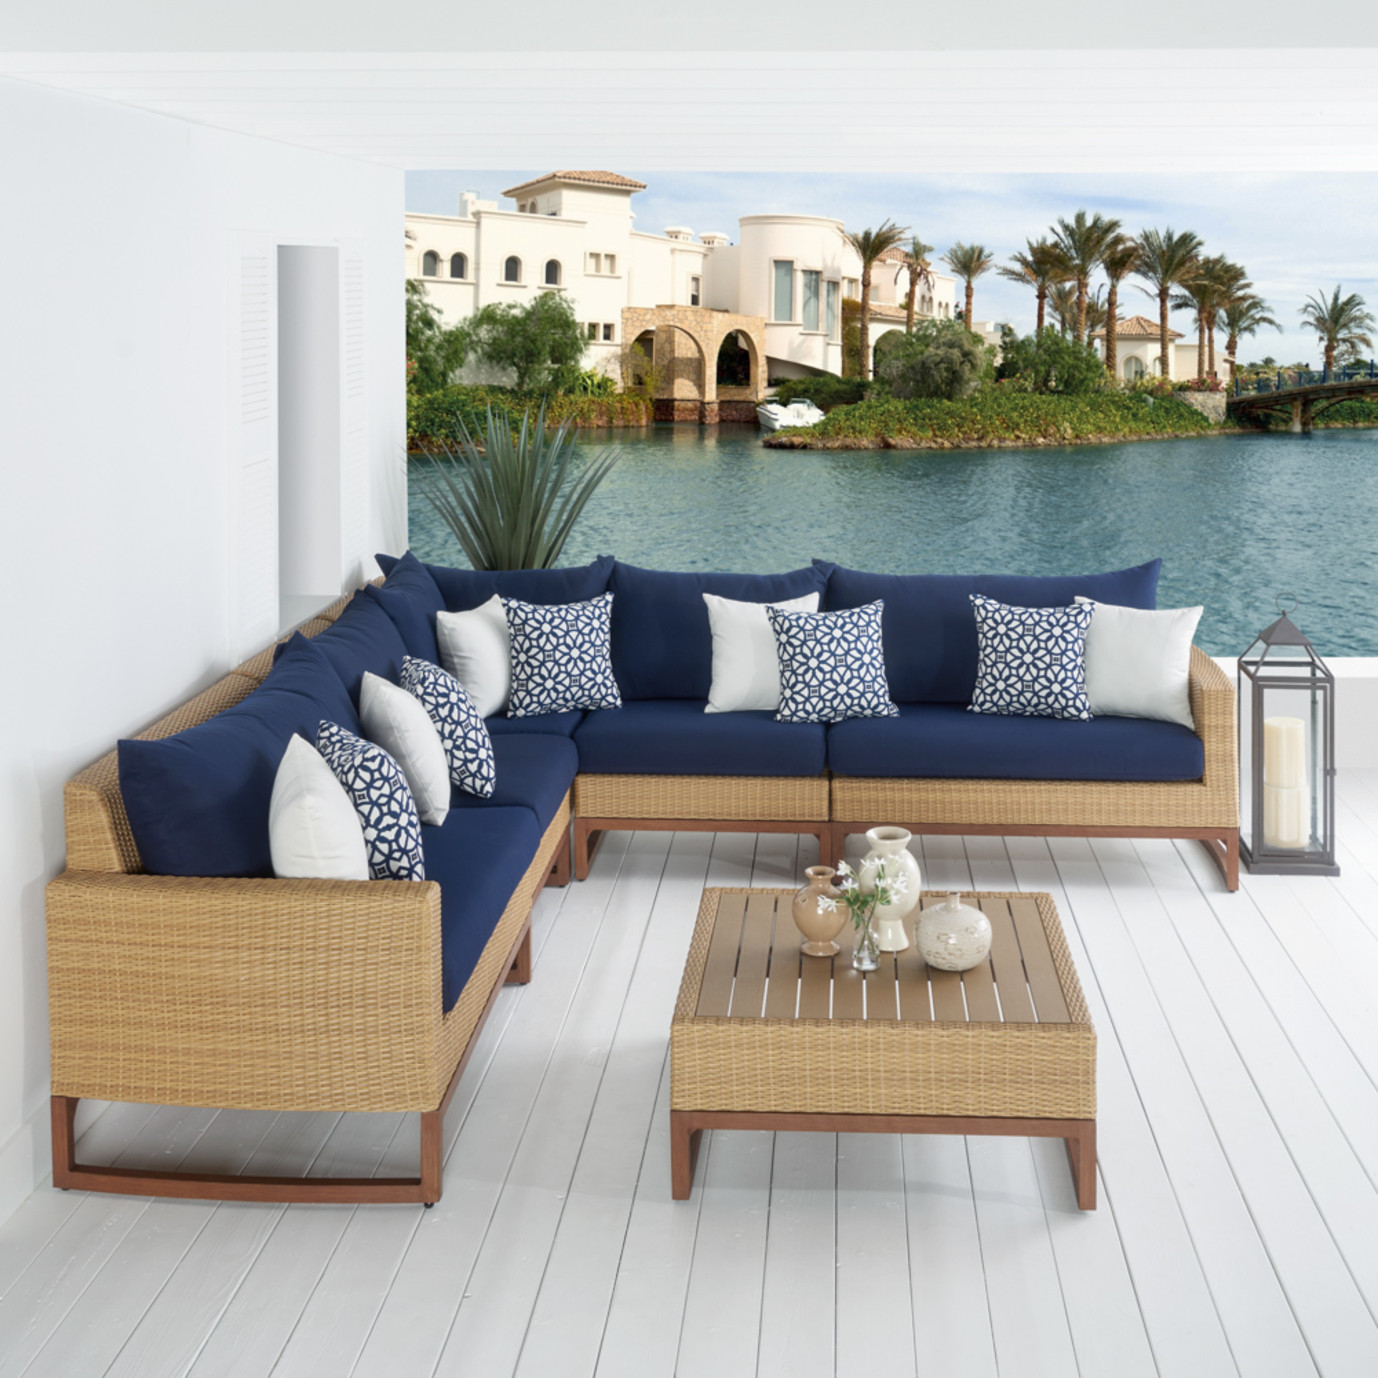 Milea™ 6pc Sofa Sectional - Navy Blue